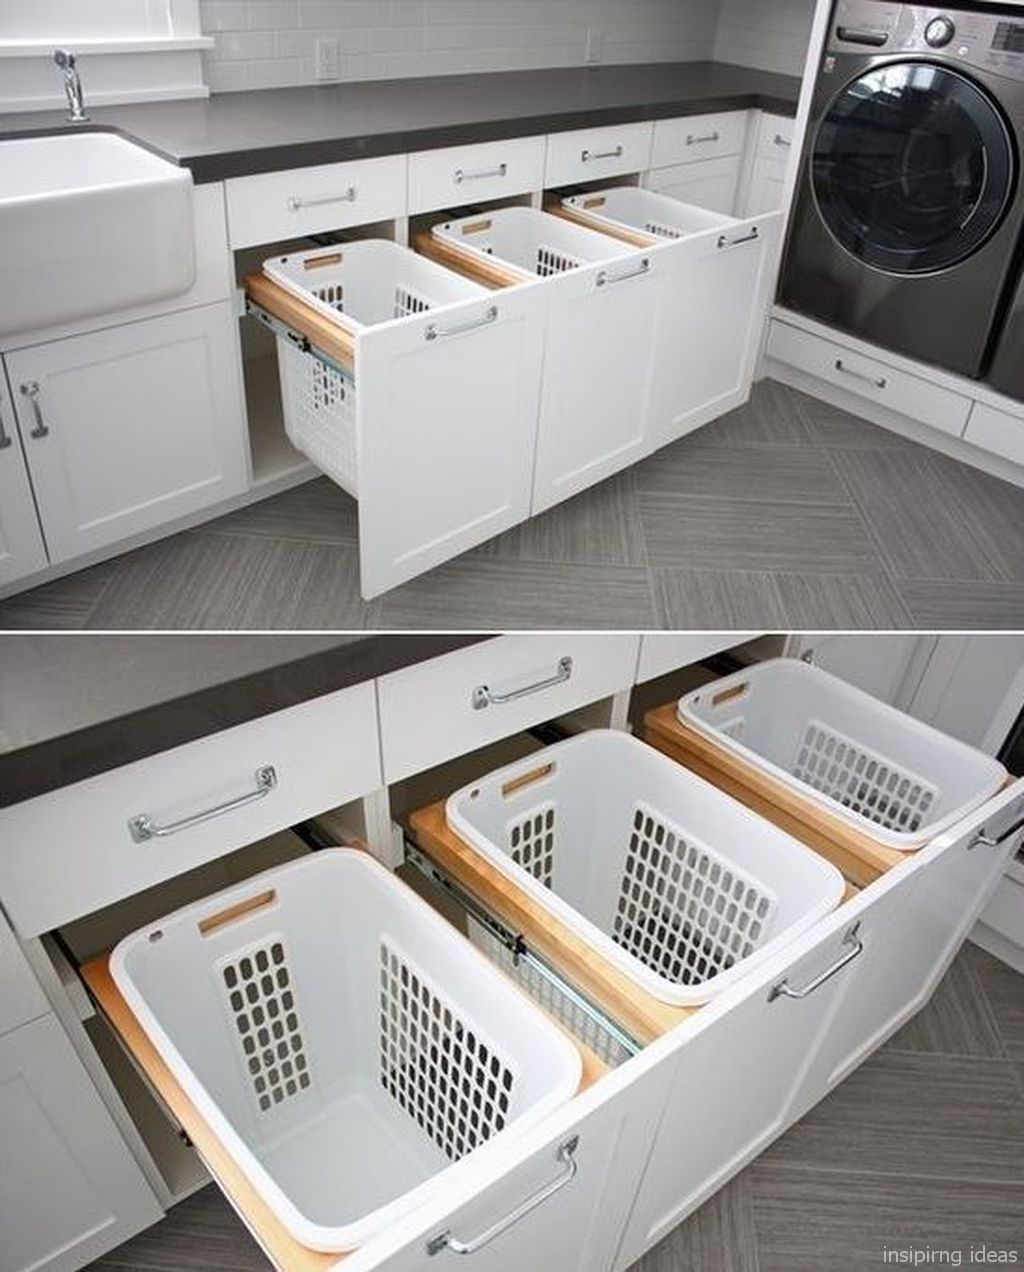 Pfandflaschen Aufbewahrung Ideen Awesome 90 Awesome Laundry Room Design And Organization Ideas